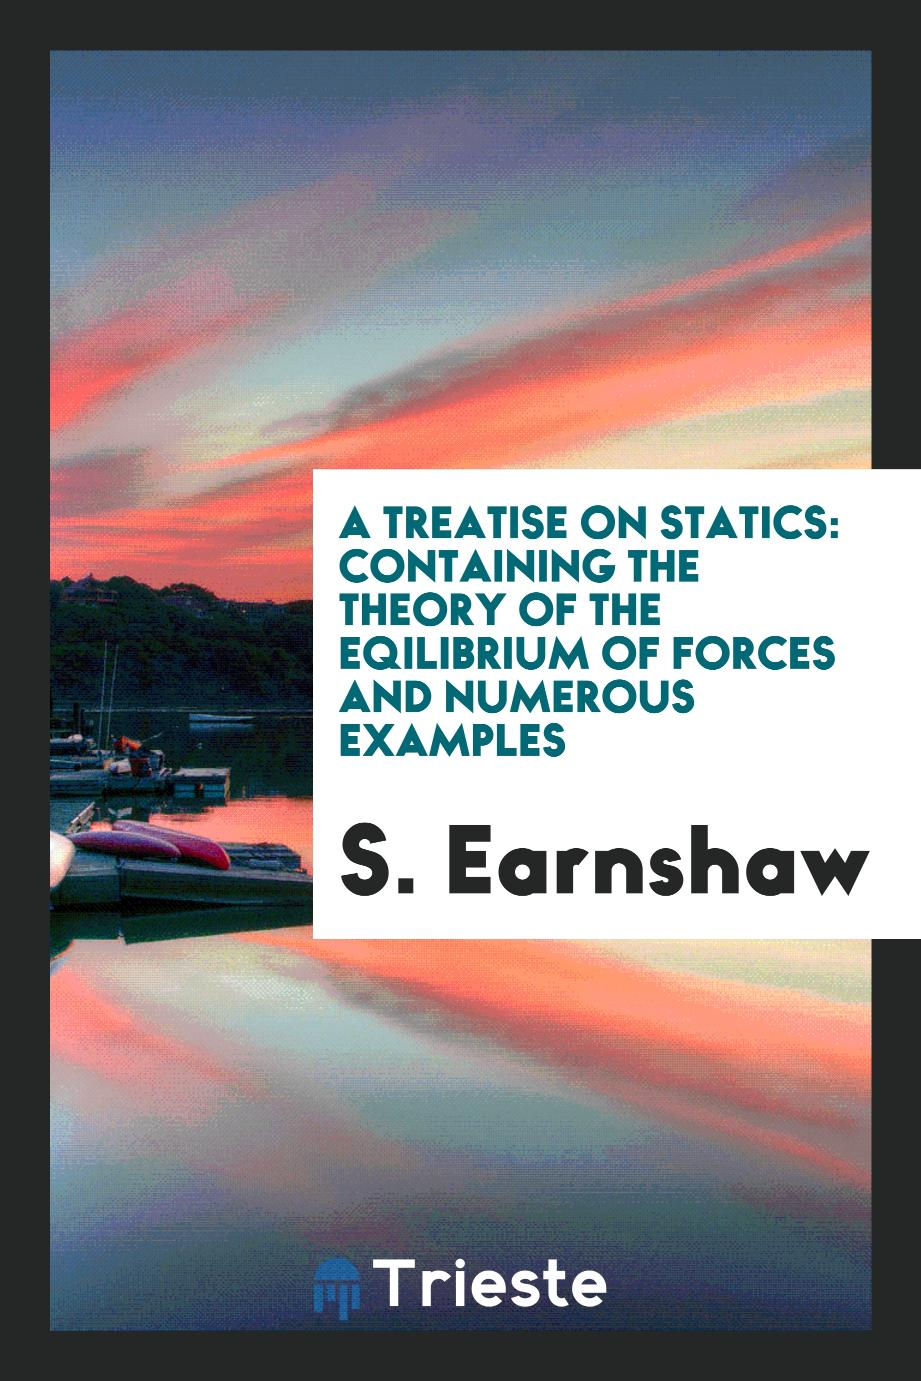 A Treatise on Statics: Containing the Theory of the Eqilibrium of Forces and Numerous Examples